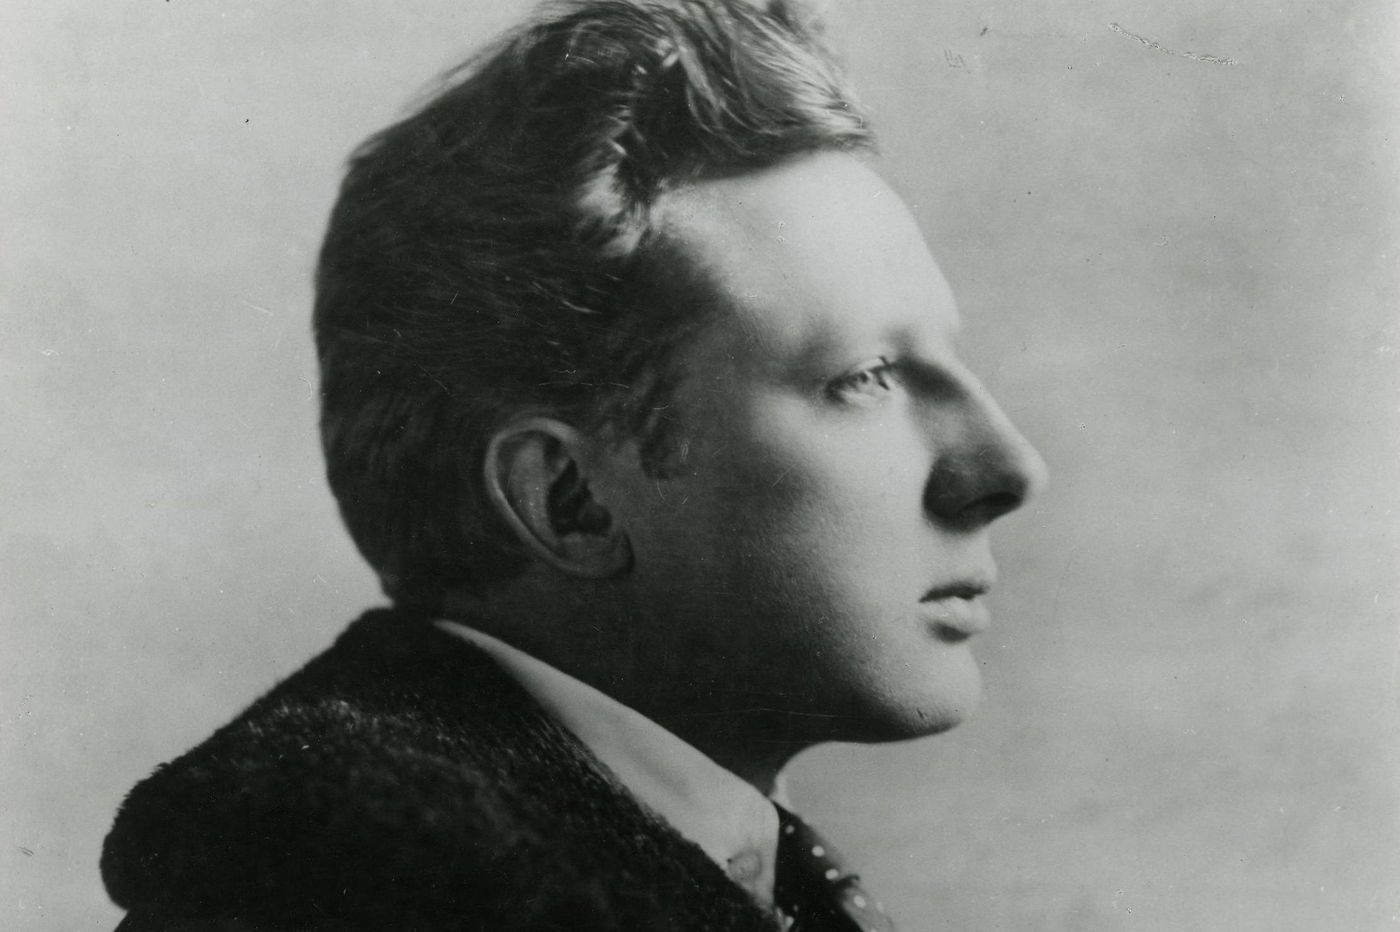 Philly's believe it or not: Leopold Stokowski and Albert C. Barnes were quite the pen pals